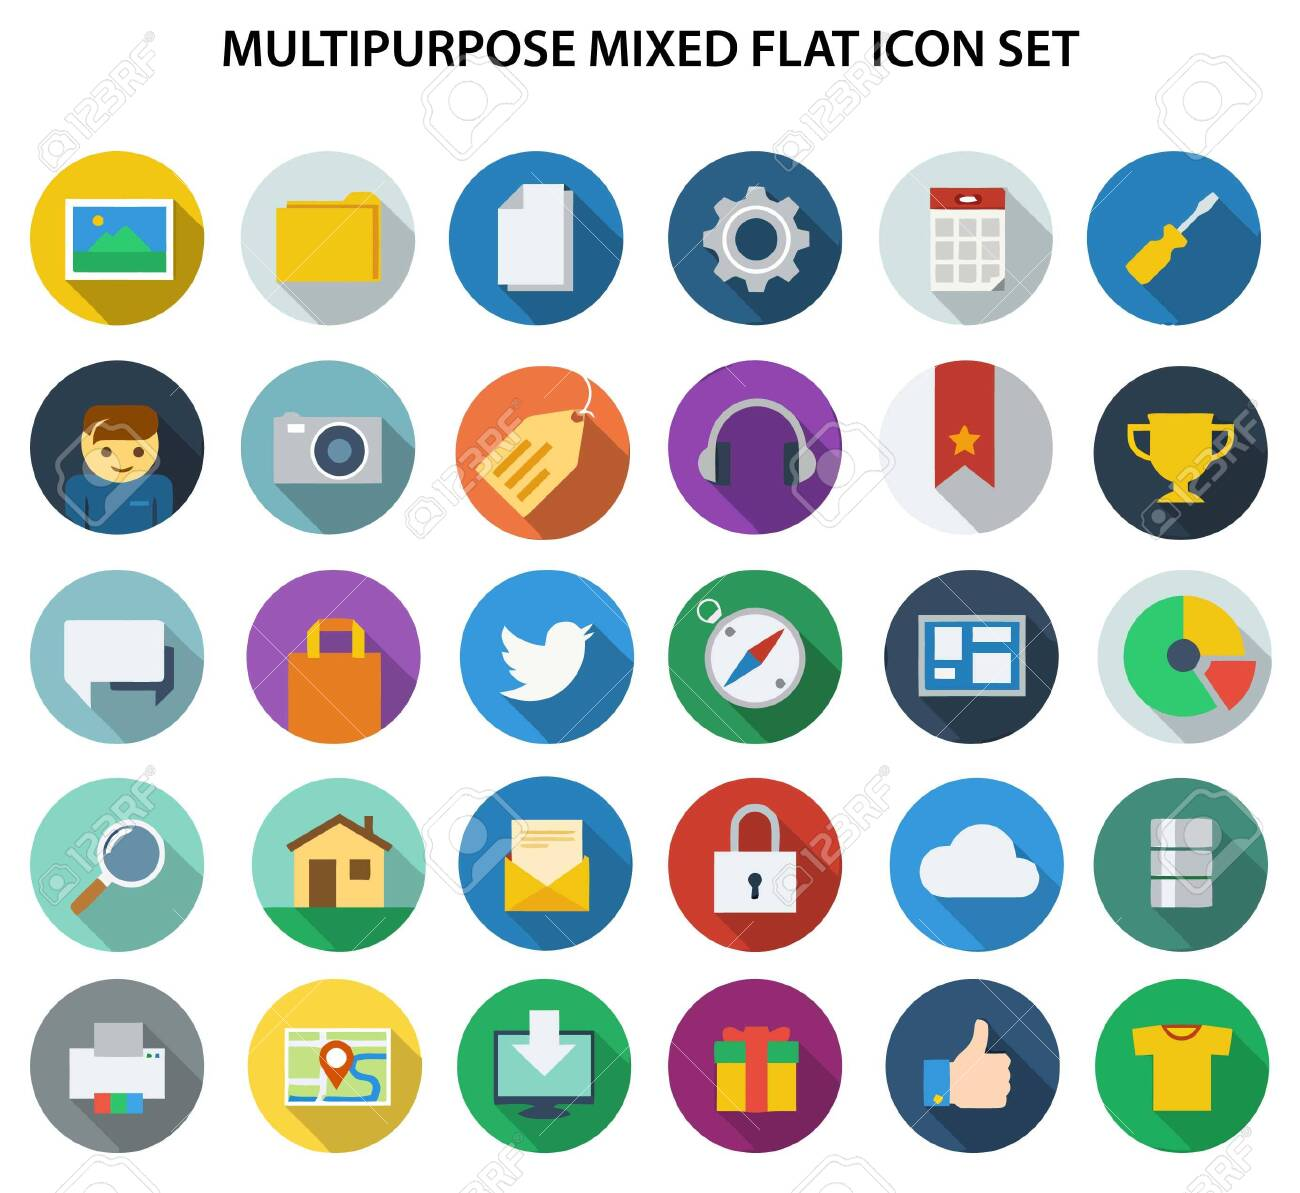 A great collection of mixed flat icon for web design, graphics design. - 146487685